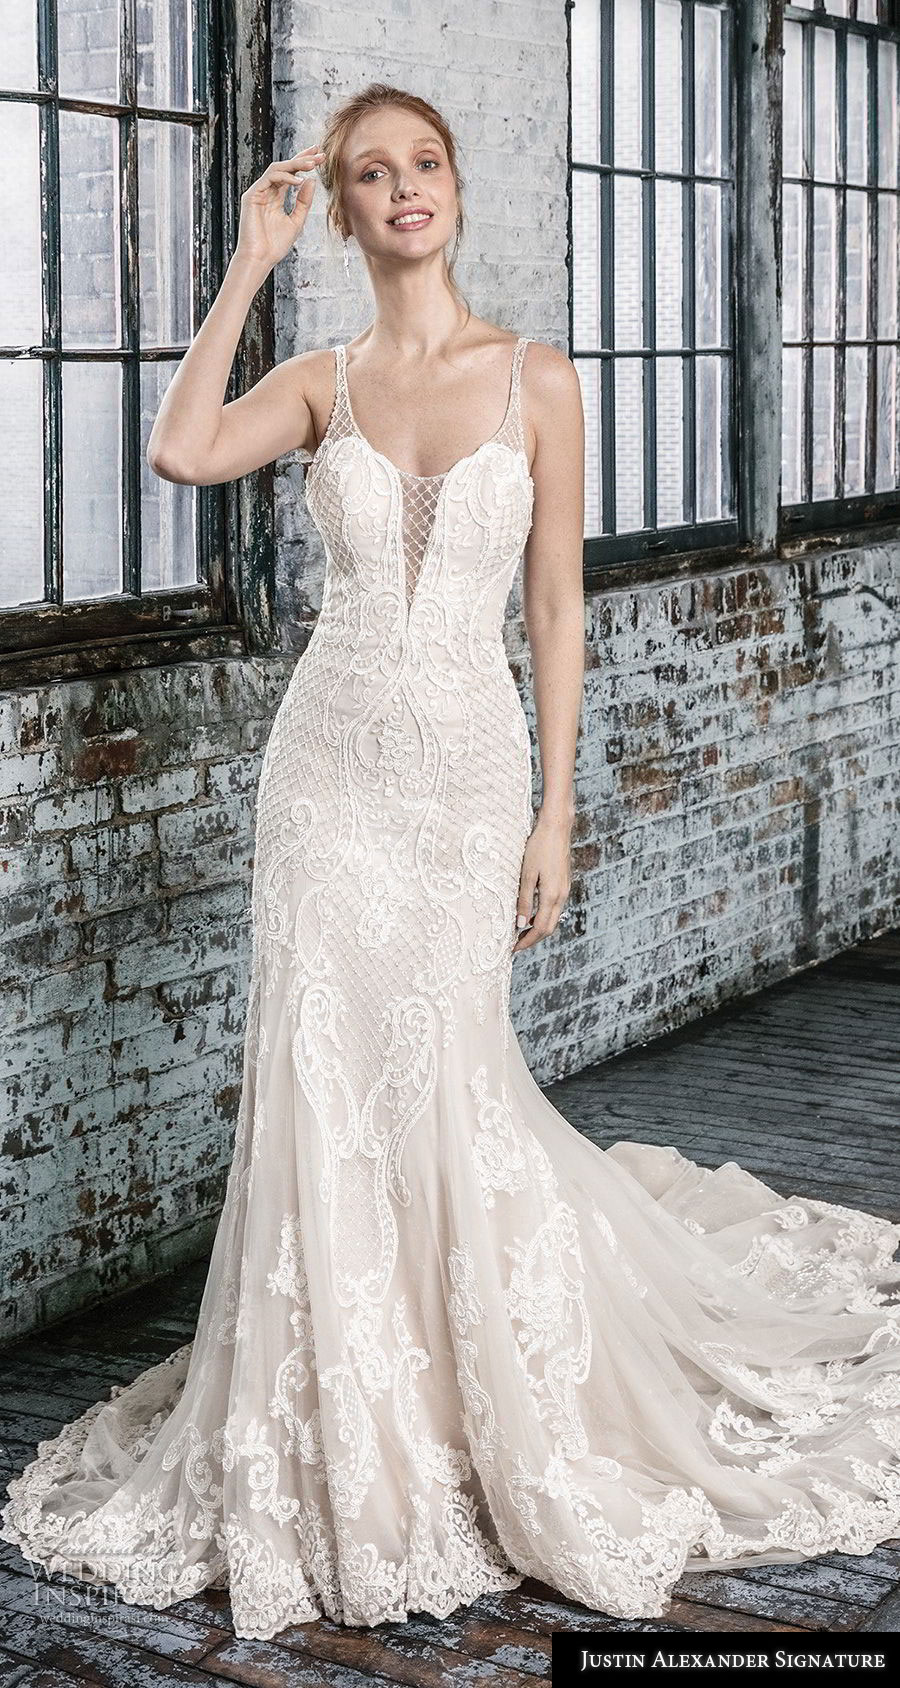 justin alexander fall 2018 signature sleeveless with strap illusion scoop deep plunging sweetheart neckline full embellishment elegant fit and flare wedding dress open back chapel train (5) mv